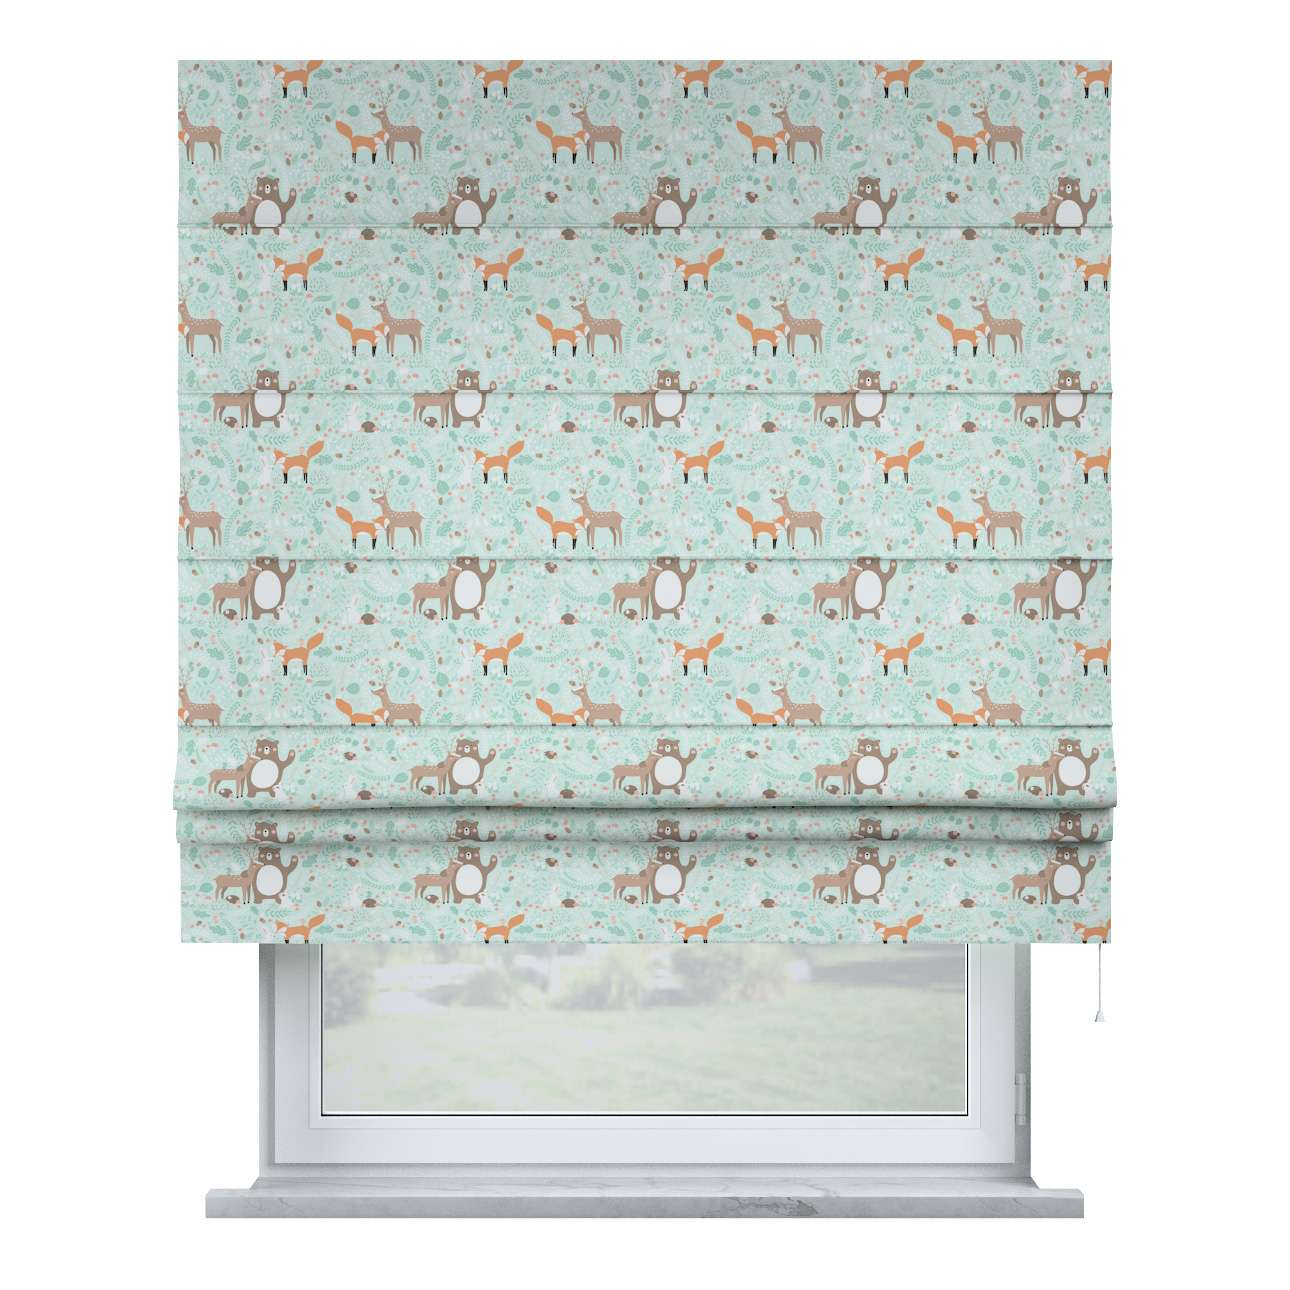 Sammy roman blind in collection Magic Collection, fabric: 500-15